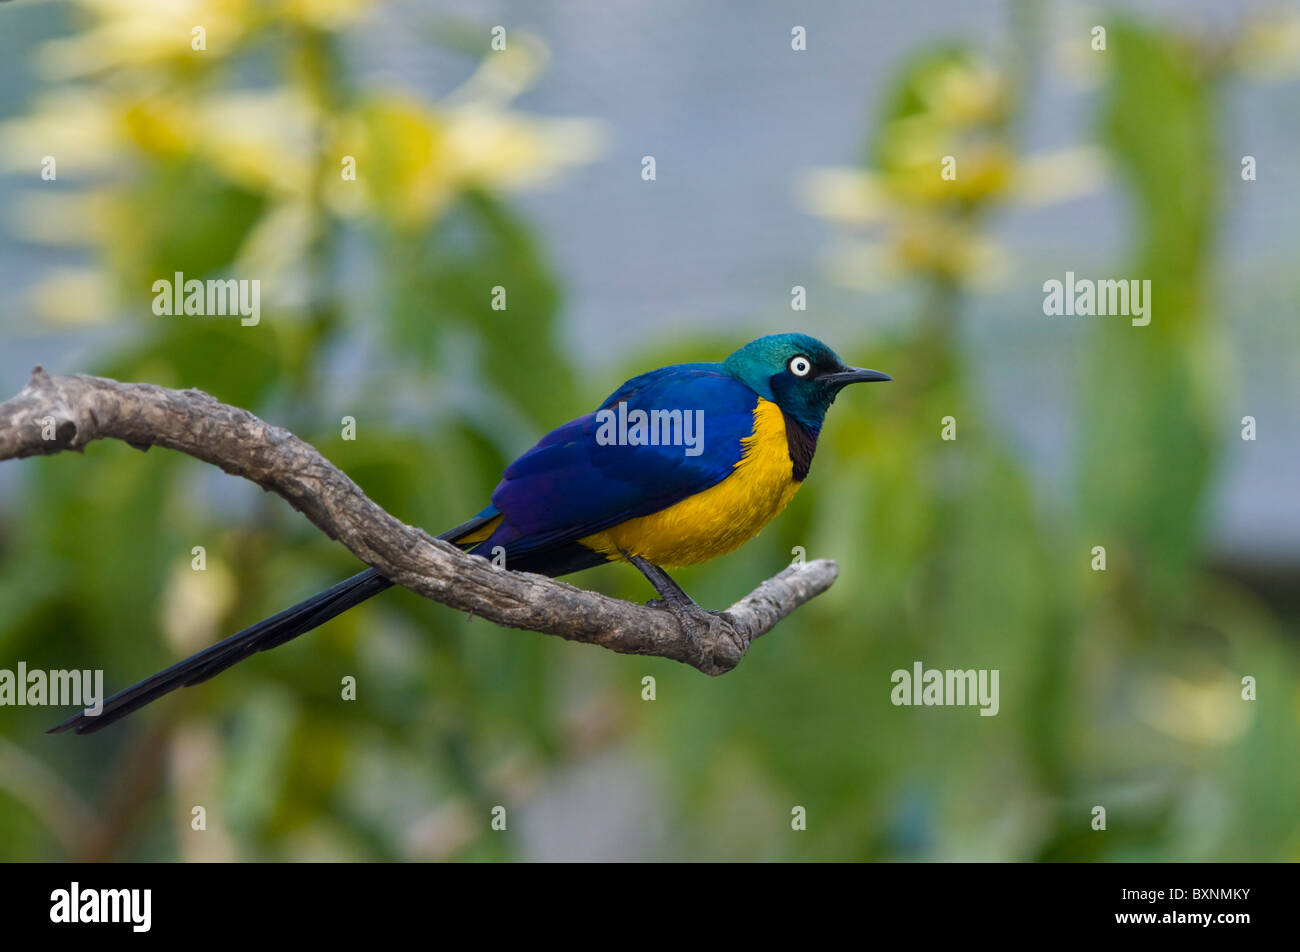 Golden-Breasted Starling (Cosmopsarus regius), World of Birds, Cape Town, South Africa - Stock Image